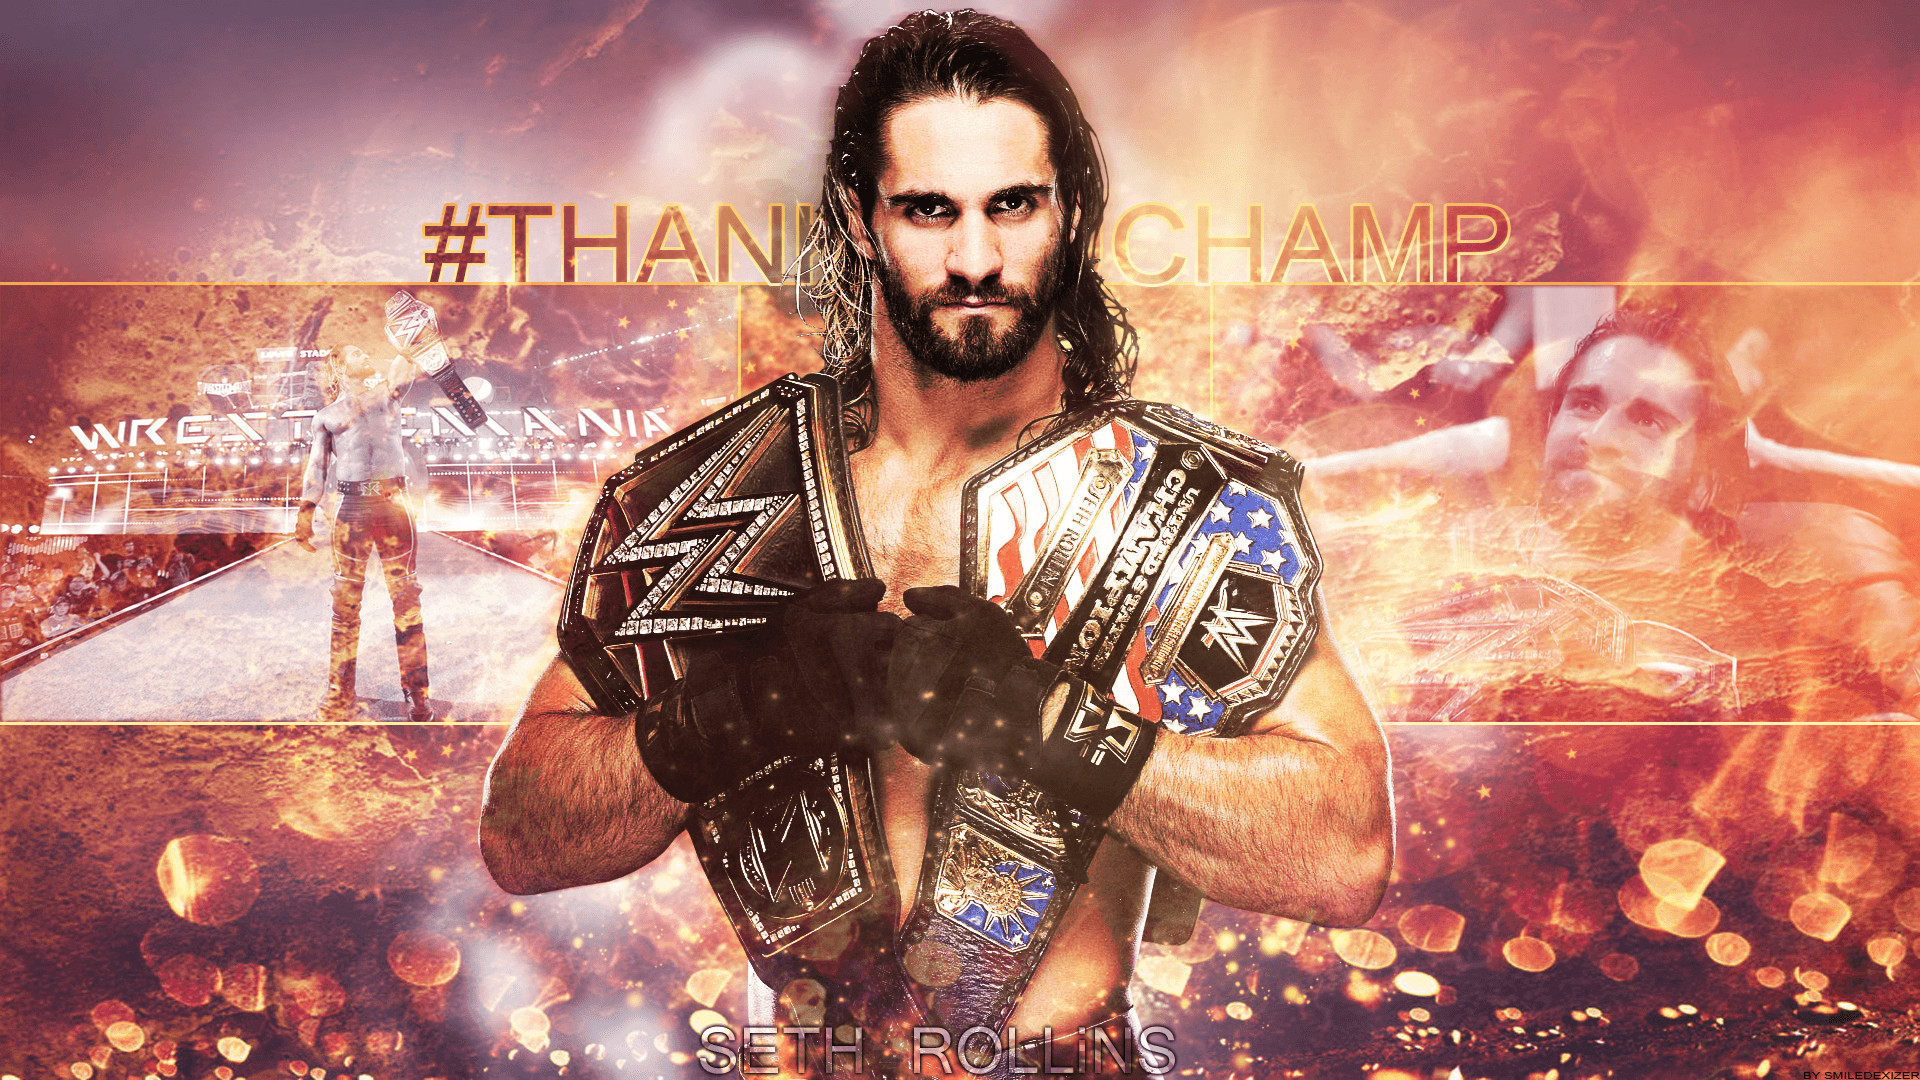 Seth Rollins HD Wallpapers – HD Wallpapers Backgrounds of Your Choice